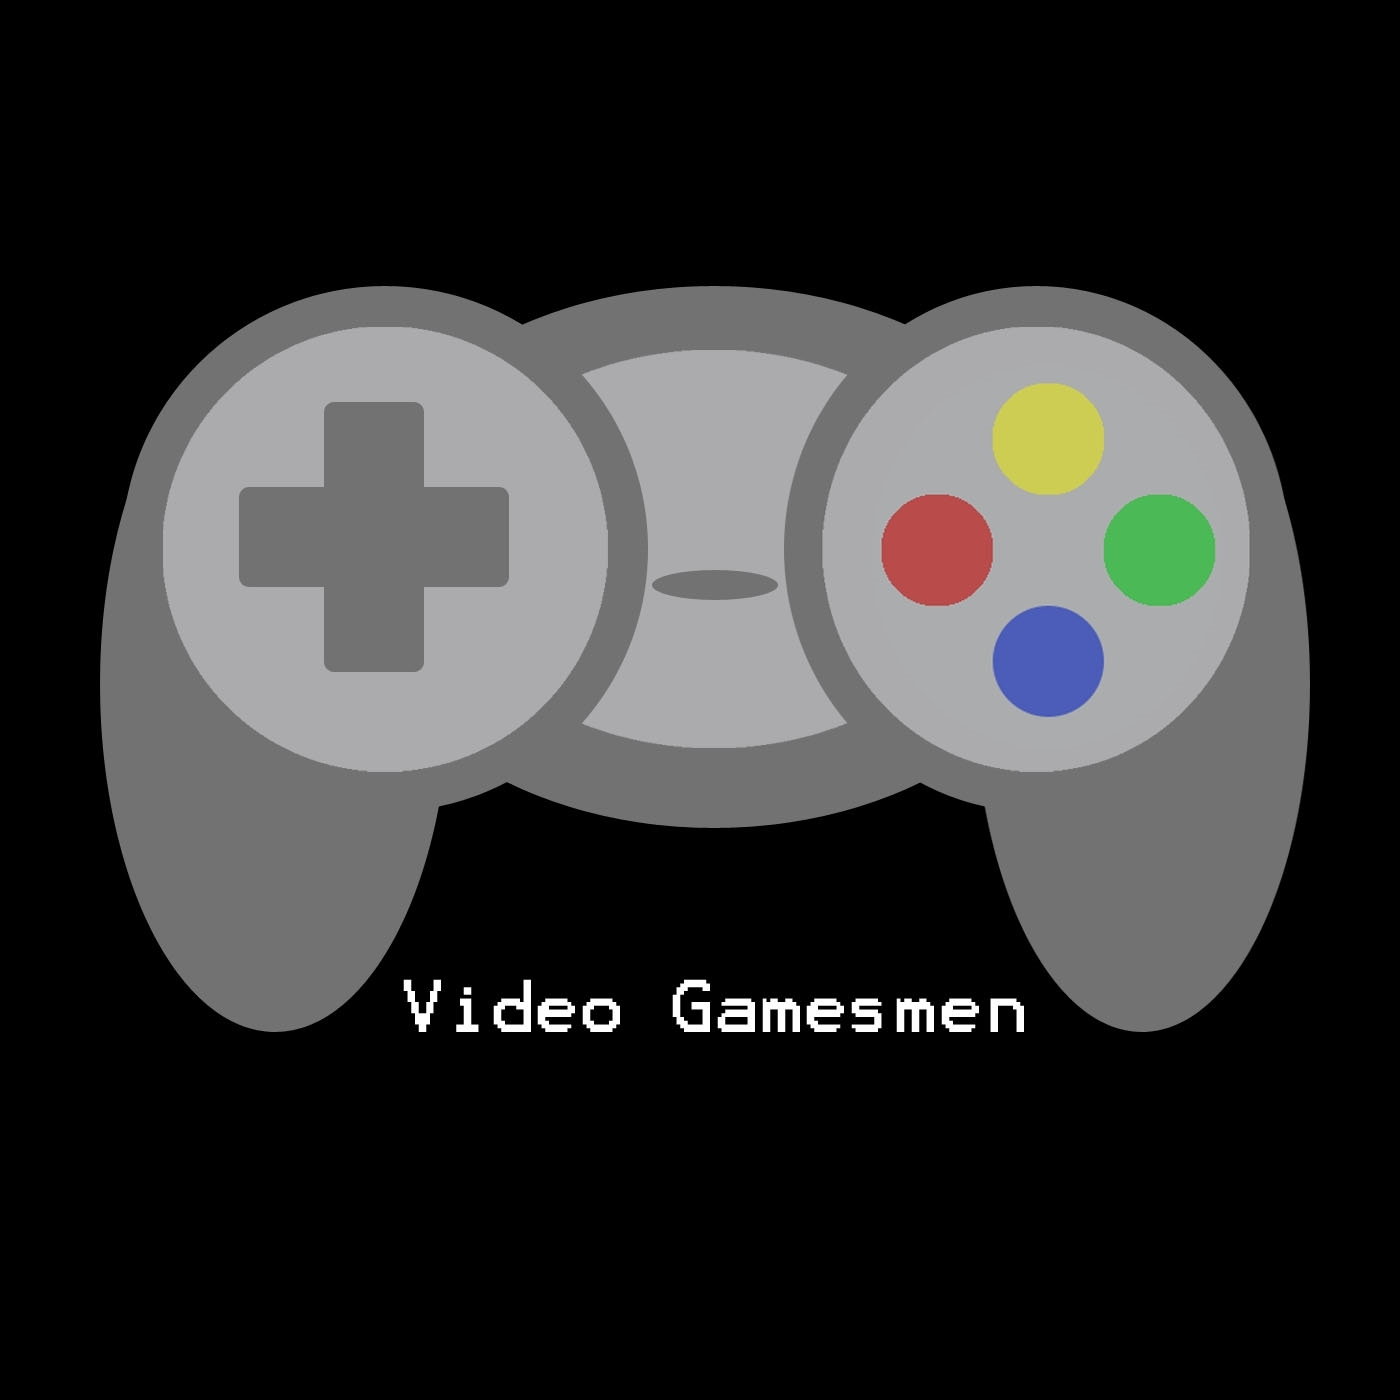 Video Gamesmen - Rob Zakes